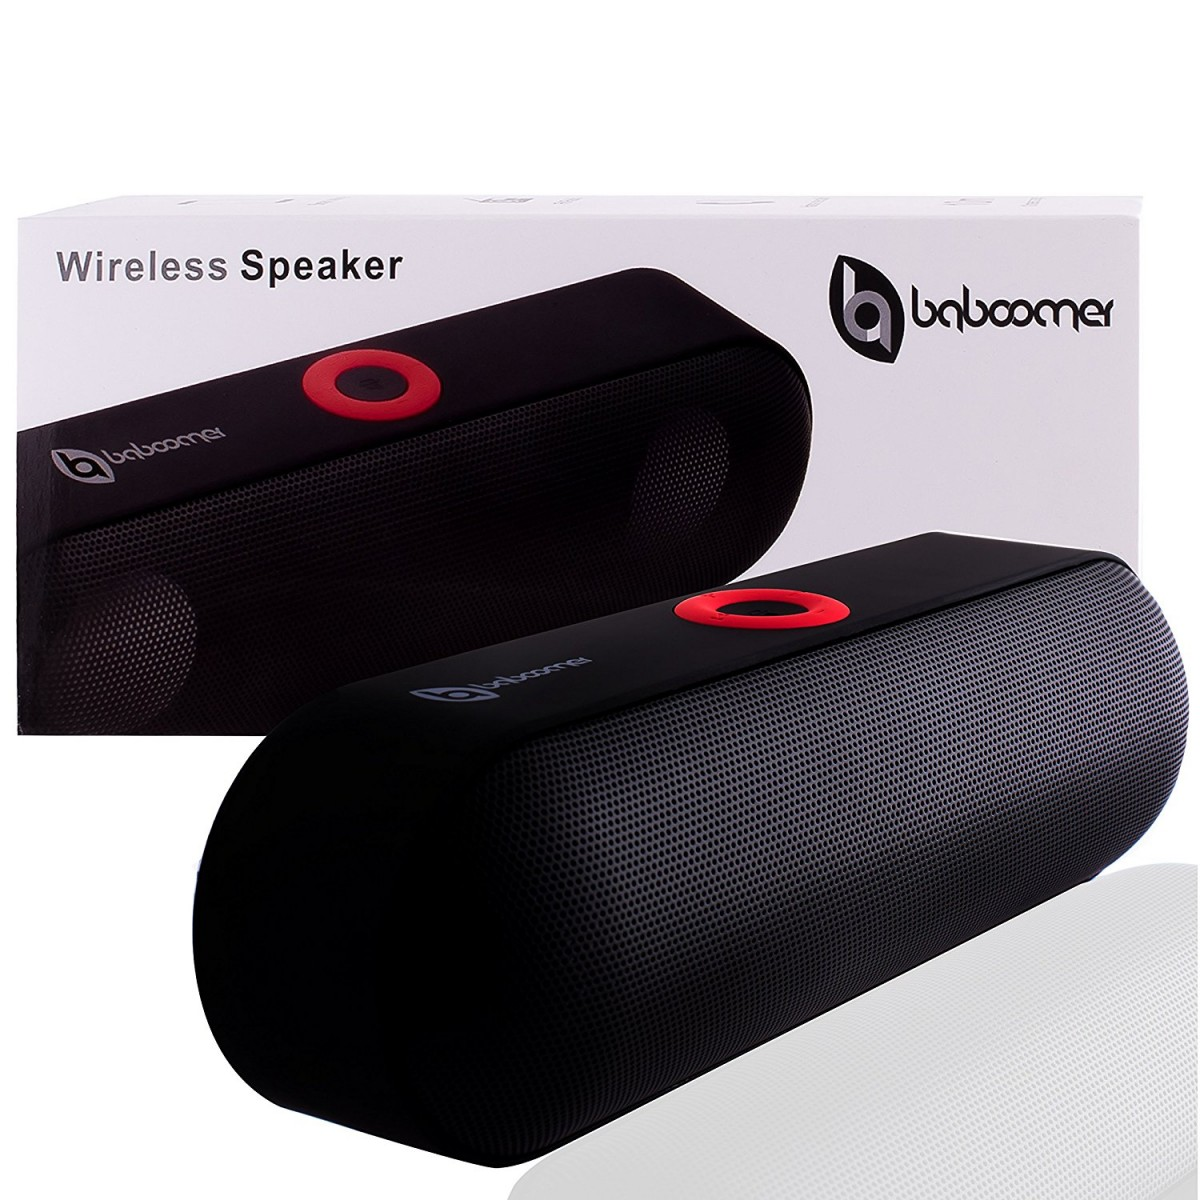 Wireless Bluetooth Speaker with 12+ hours battery Life, best Portable  wireless Speaker for Outdoor and indoor with Built-in Dual Driver speakers,  HD